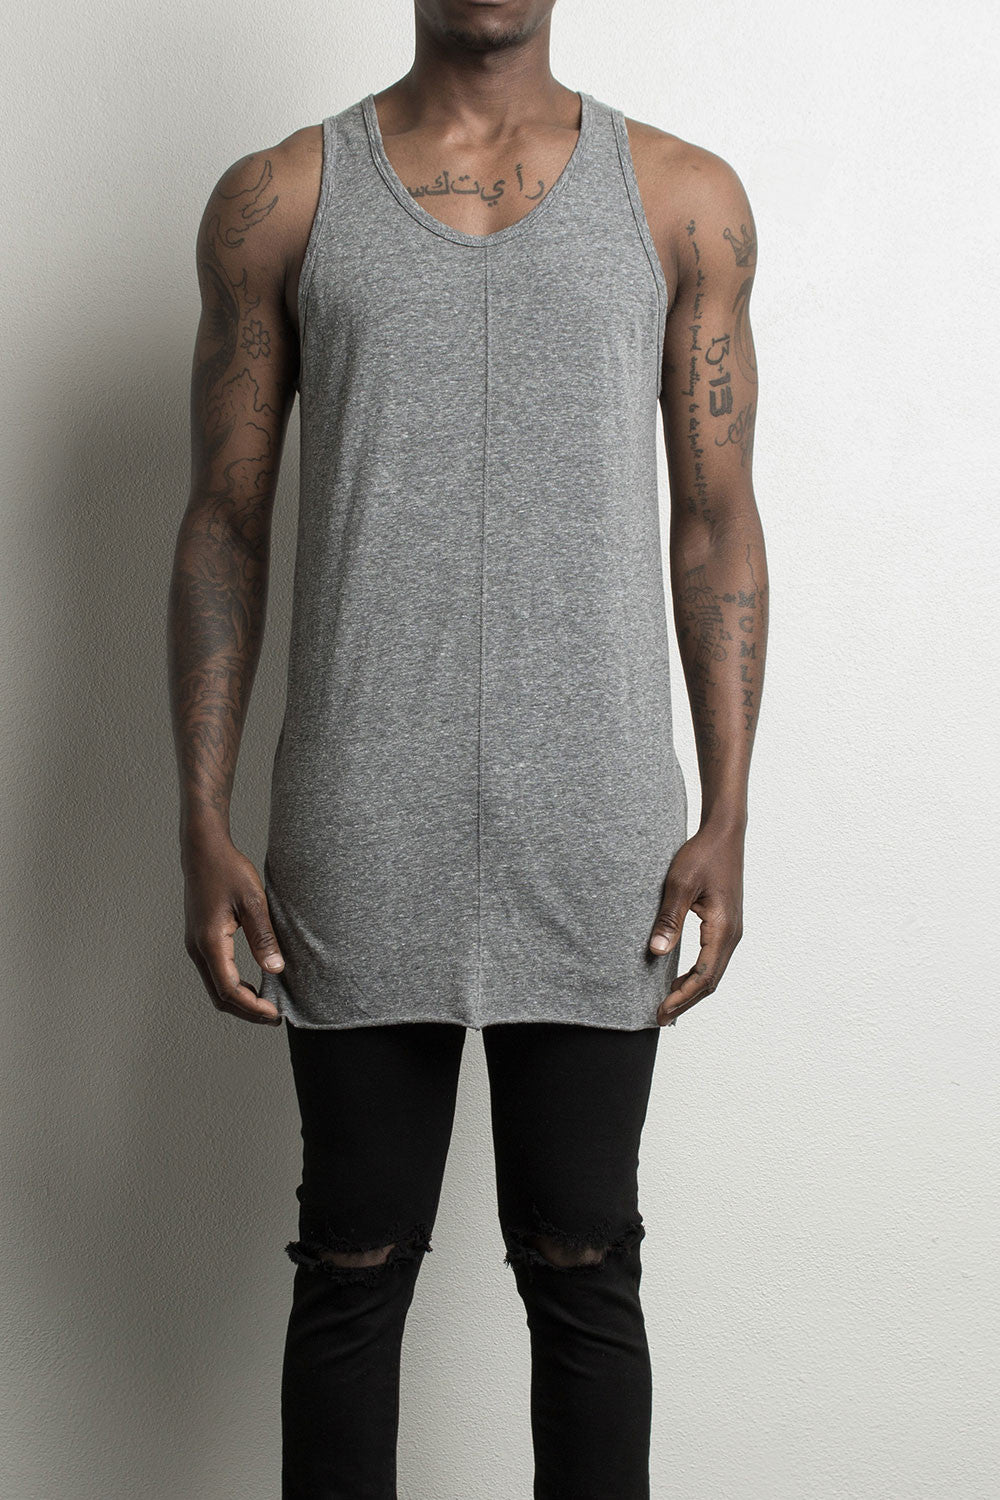 loose tank top by daniel patrick in heather grey